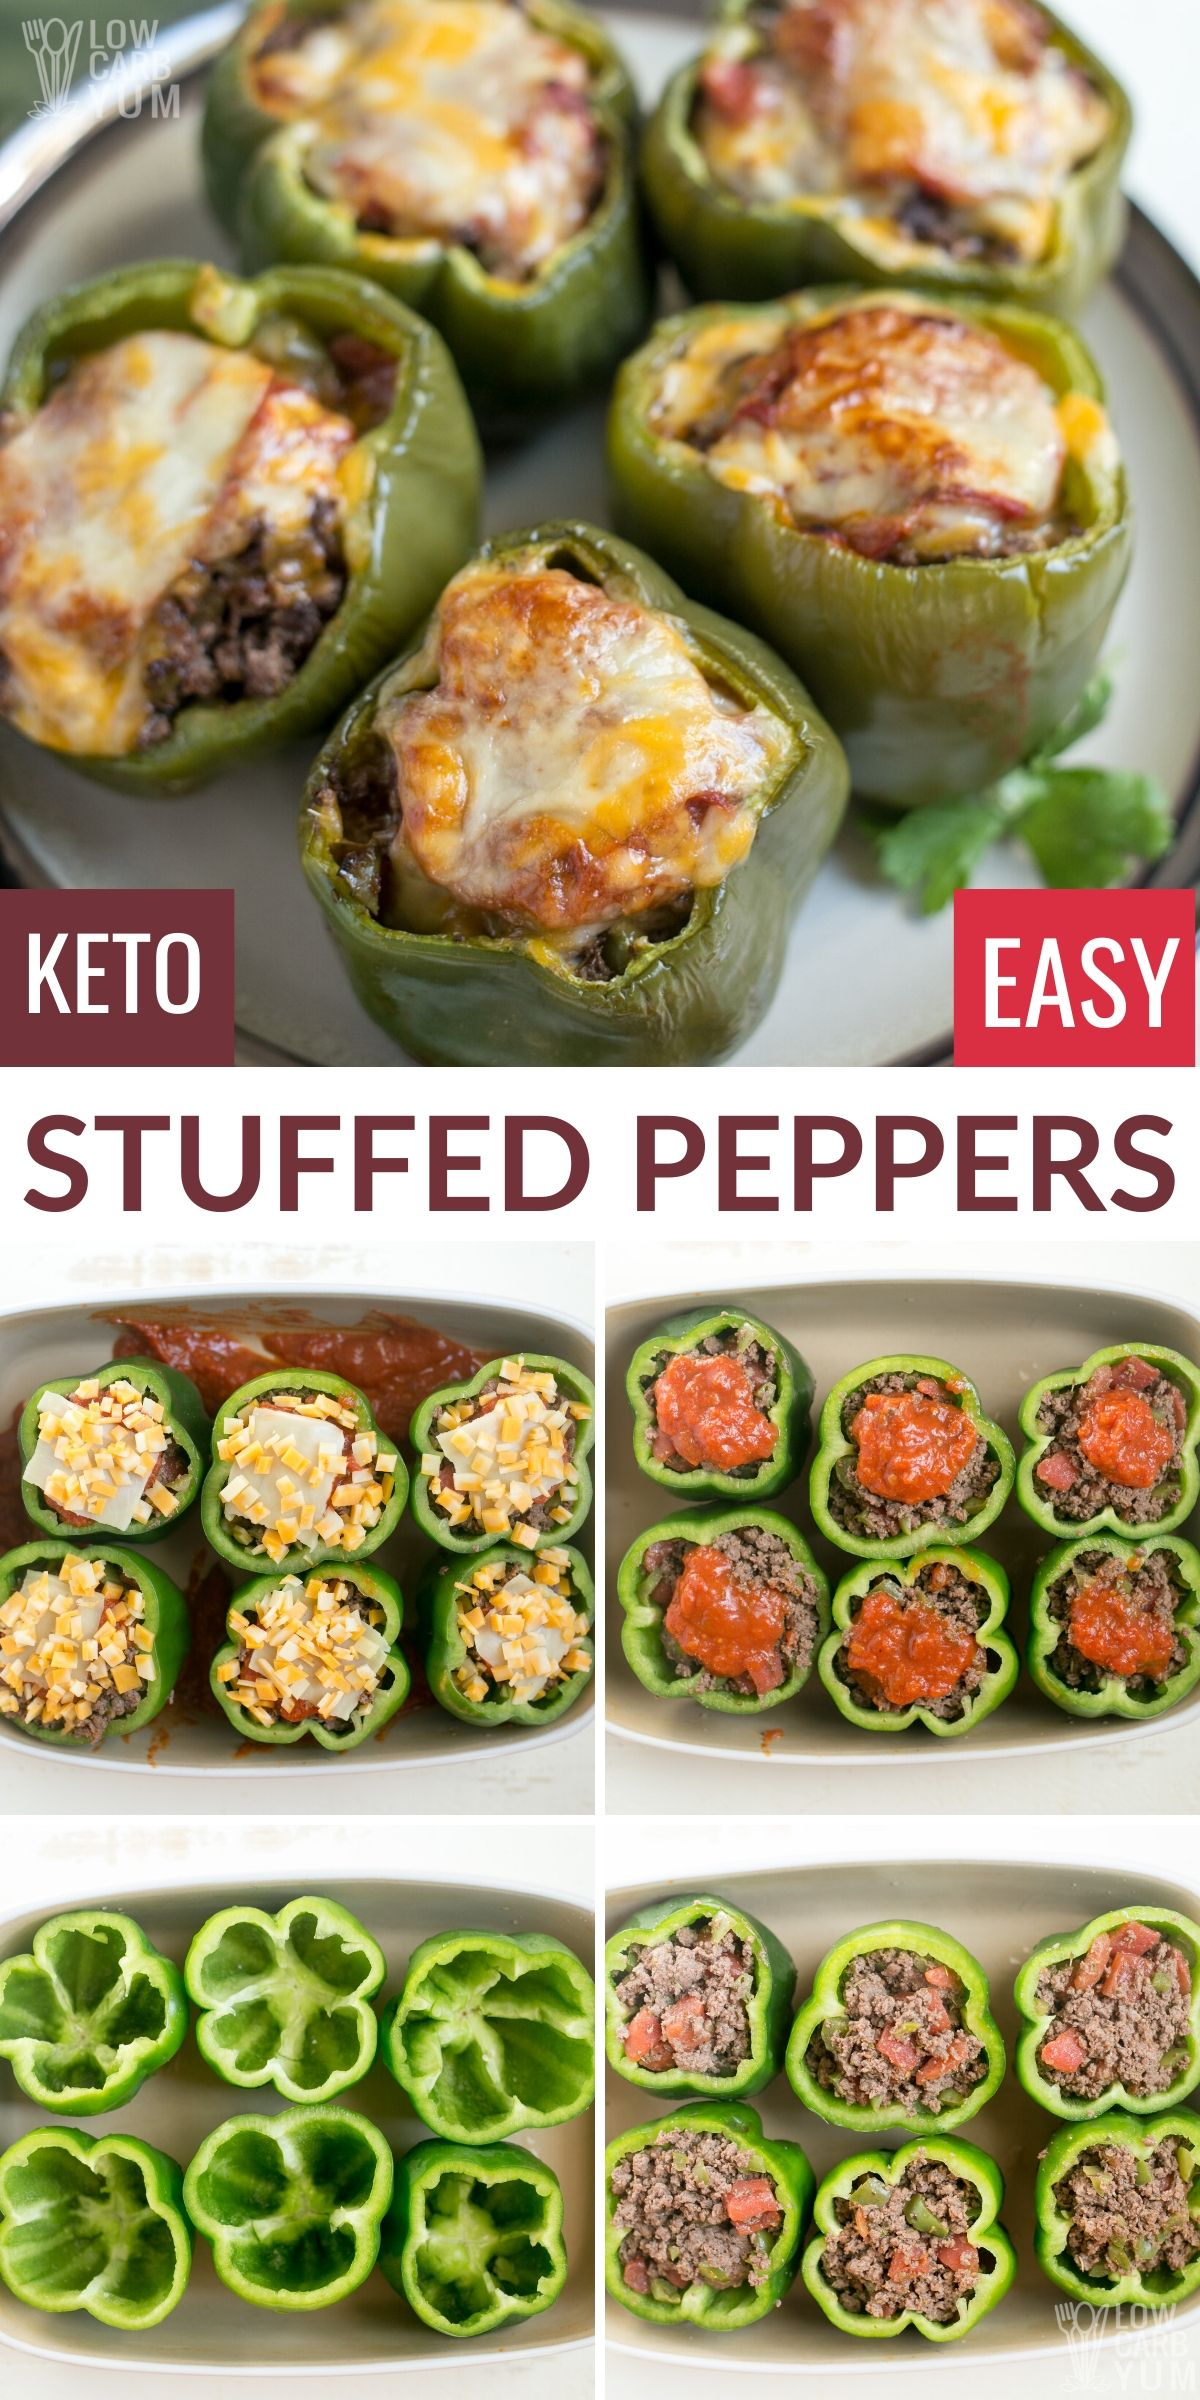 Keto Low Carb Stuffed Peppers With Beef In 2020 Low Carb Stuffed Peppers Keto Recipes Easy Keto Recipes Dinner